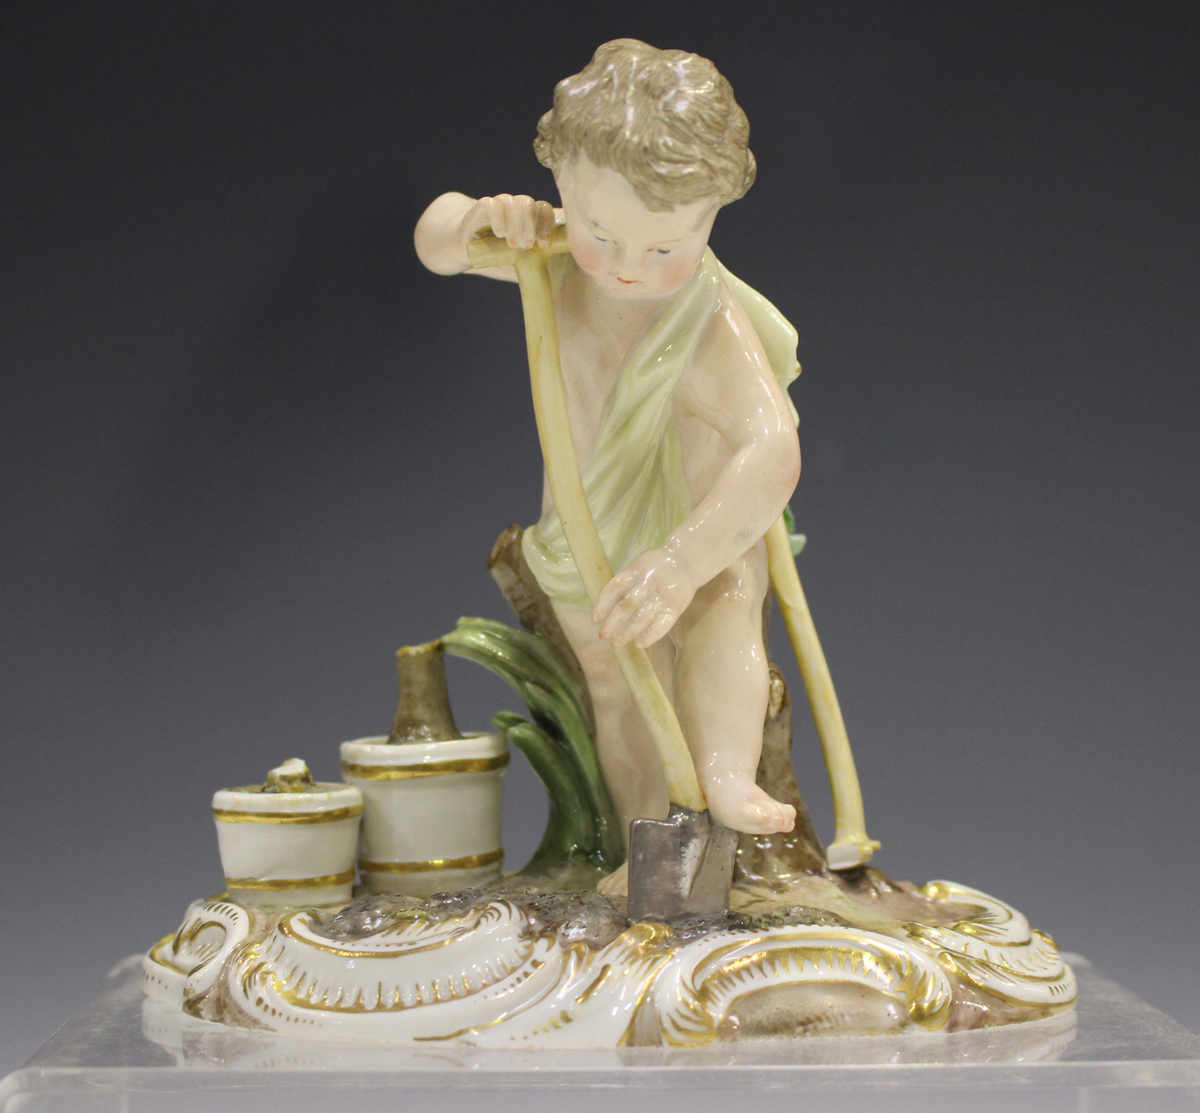 A Meissen figure of a putto gardener, late 19th century, modelled digging with a spade, a rake and